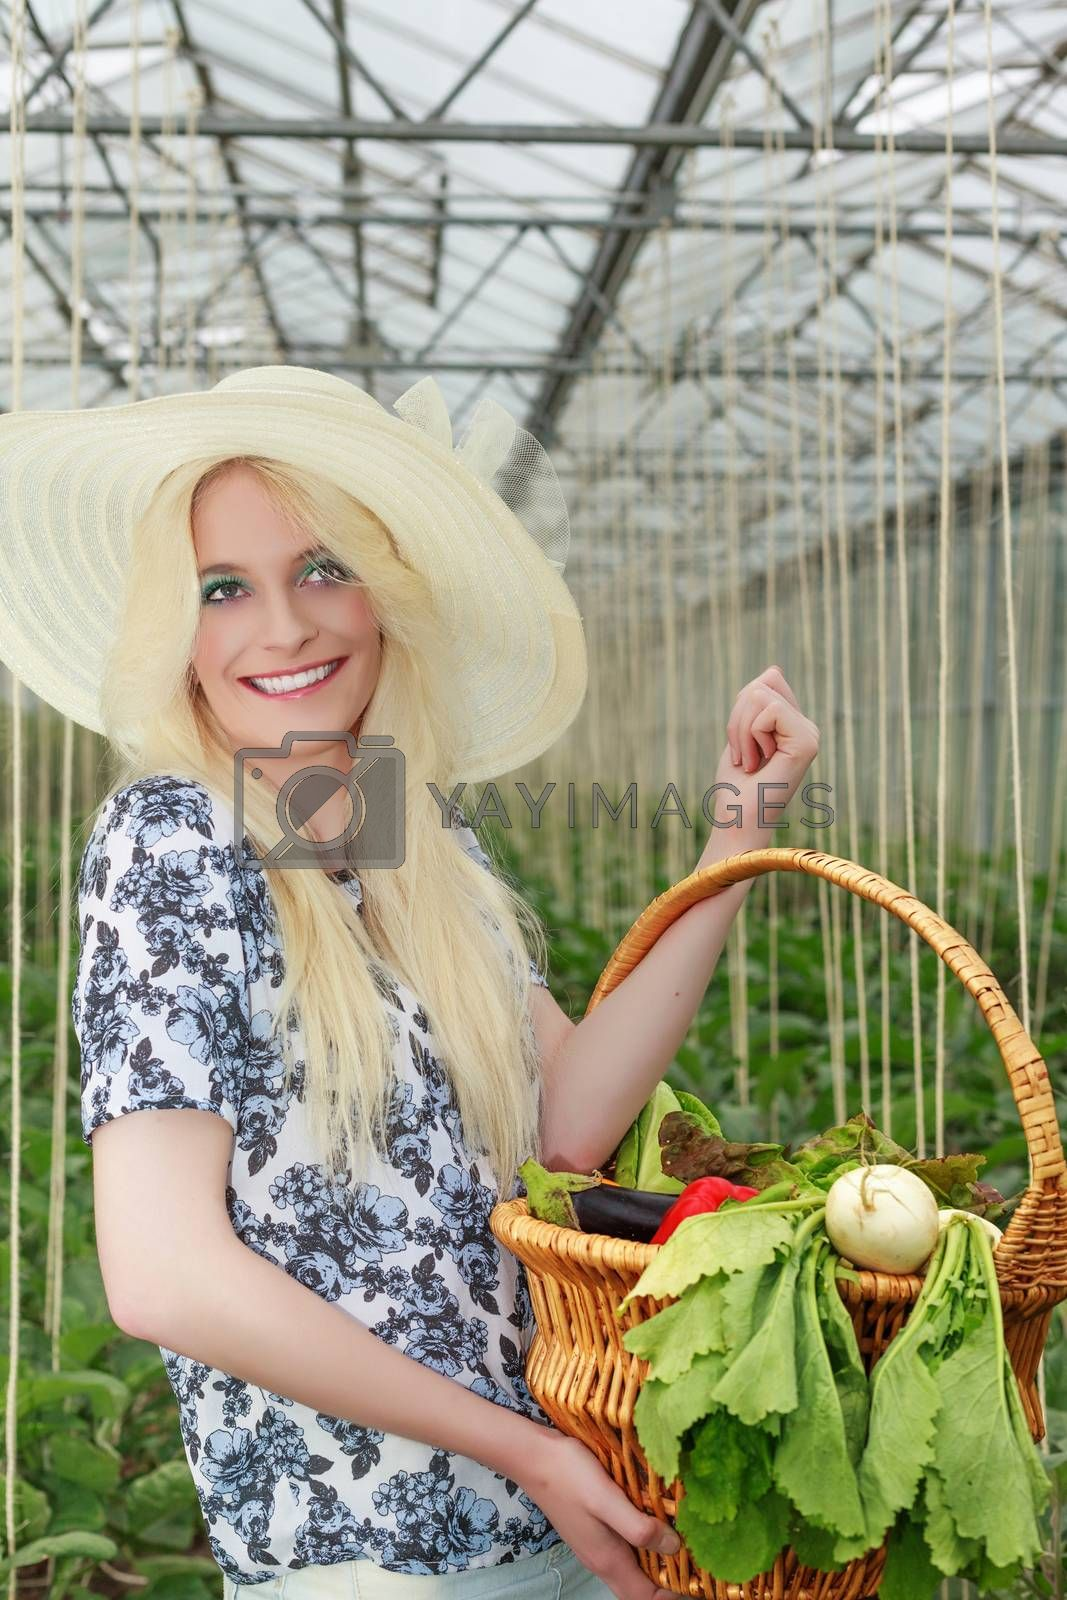 Pretty Blond Woman Wearing Straw Hat, Carrying Basket of Fresh Veggies on her Arm Inside the Farm and Looking Into the Distance.